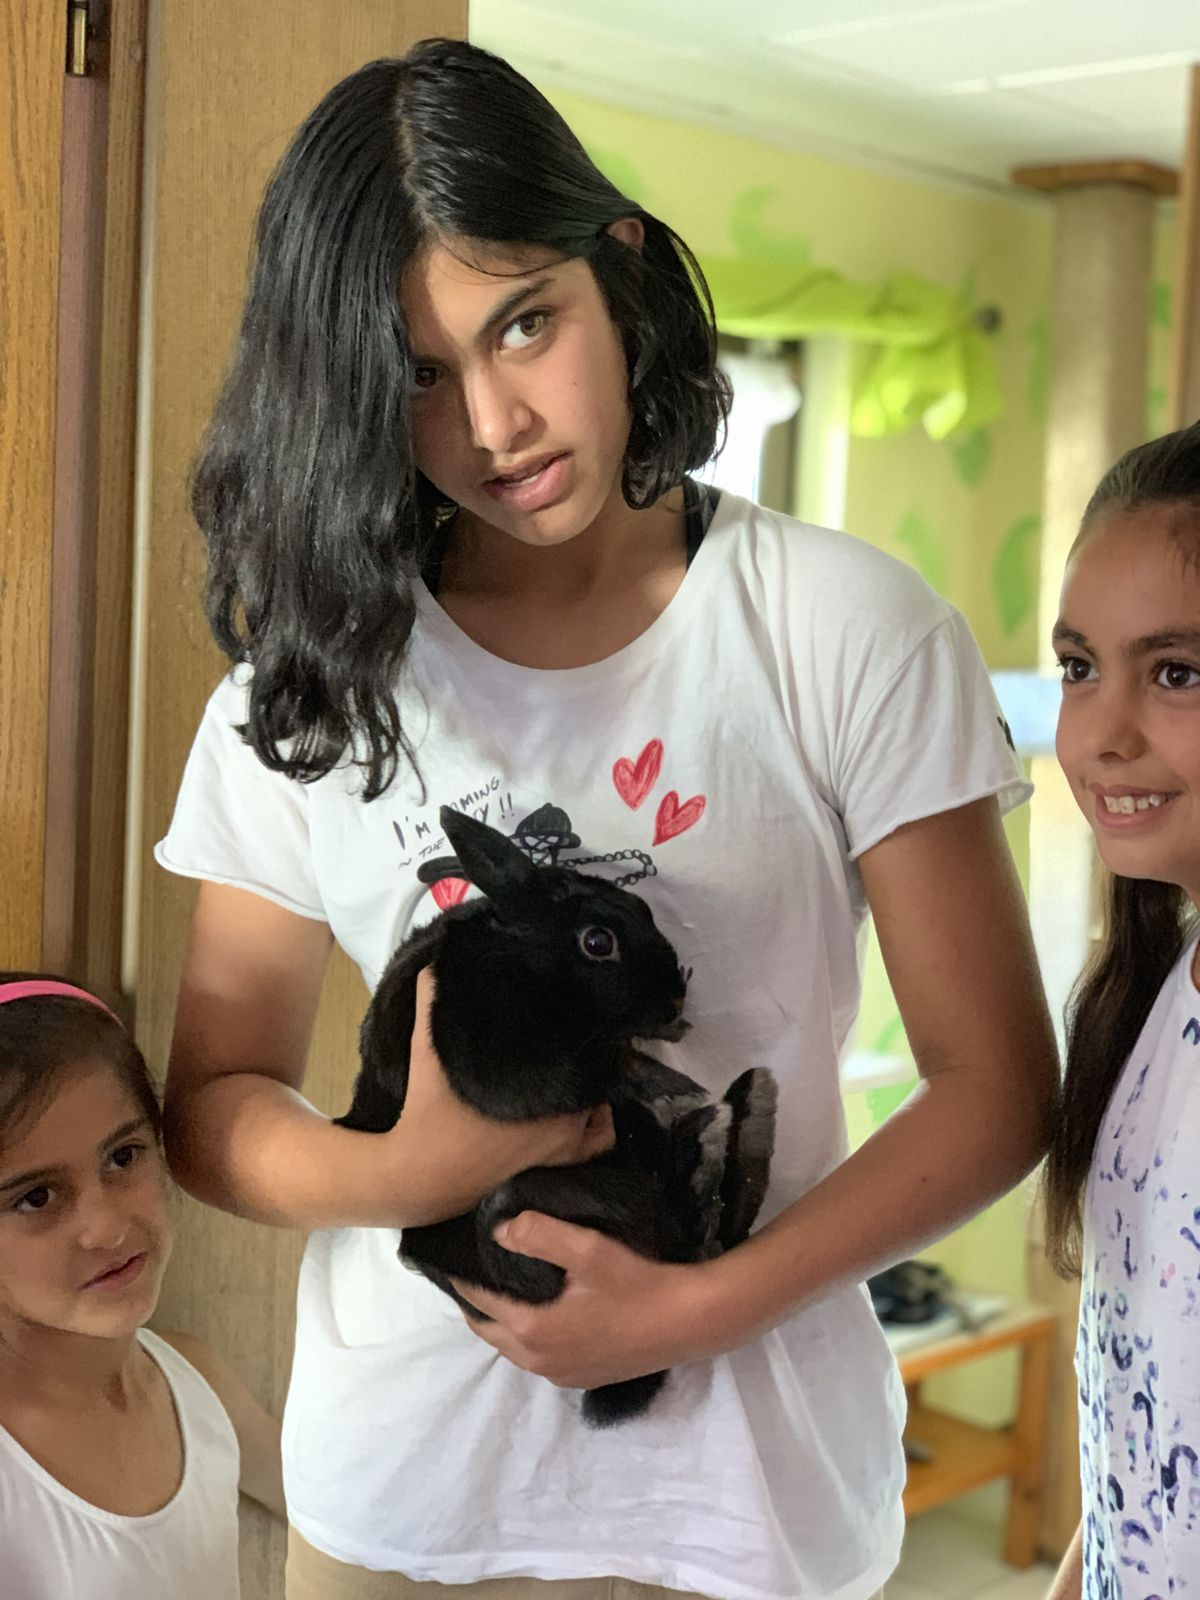 Fourteen-year-old Syrian refugee Hind Al Hammoud in her family's house in Neu-Anspach, Germany, holds a rabbit with her siblings looking on, Saturday, Sept. 14, 2019. Al Hammoud traveled with her family from their war-torn city to a small village in the Taunus mountain range of Germany where they are all working to integrate and heal from the trauma of the war and their flight.